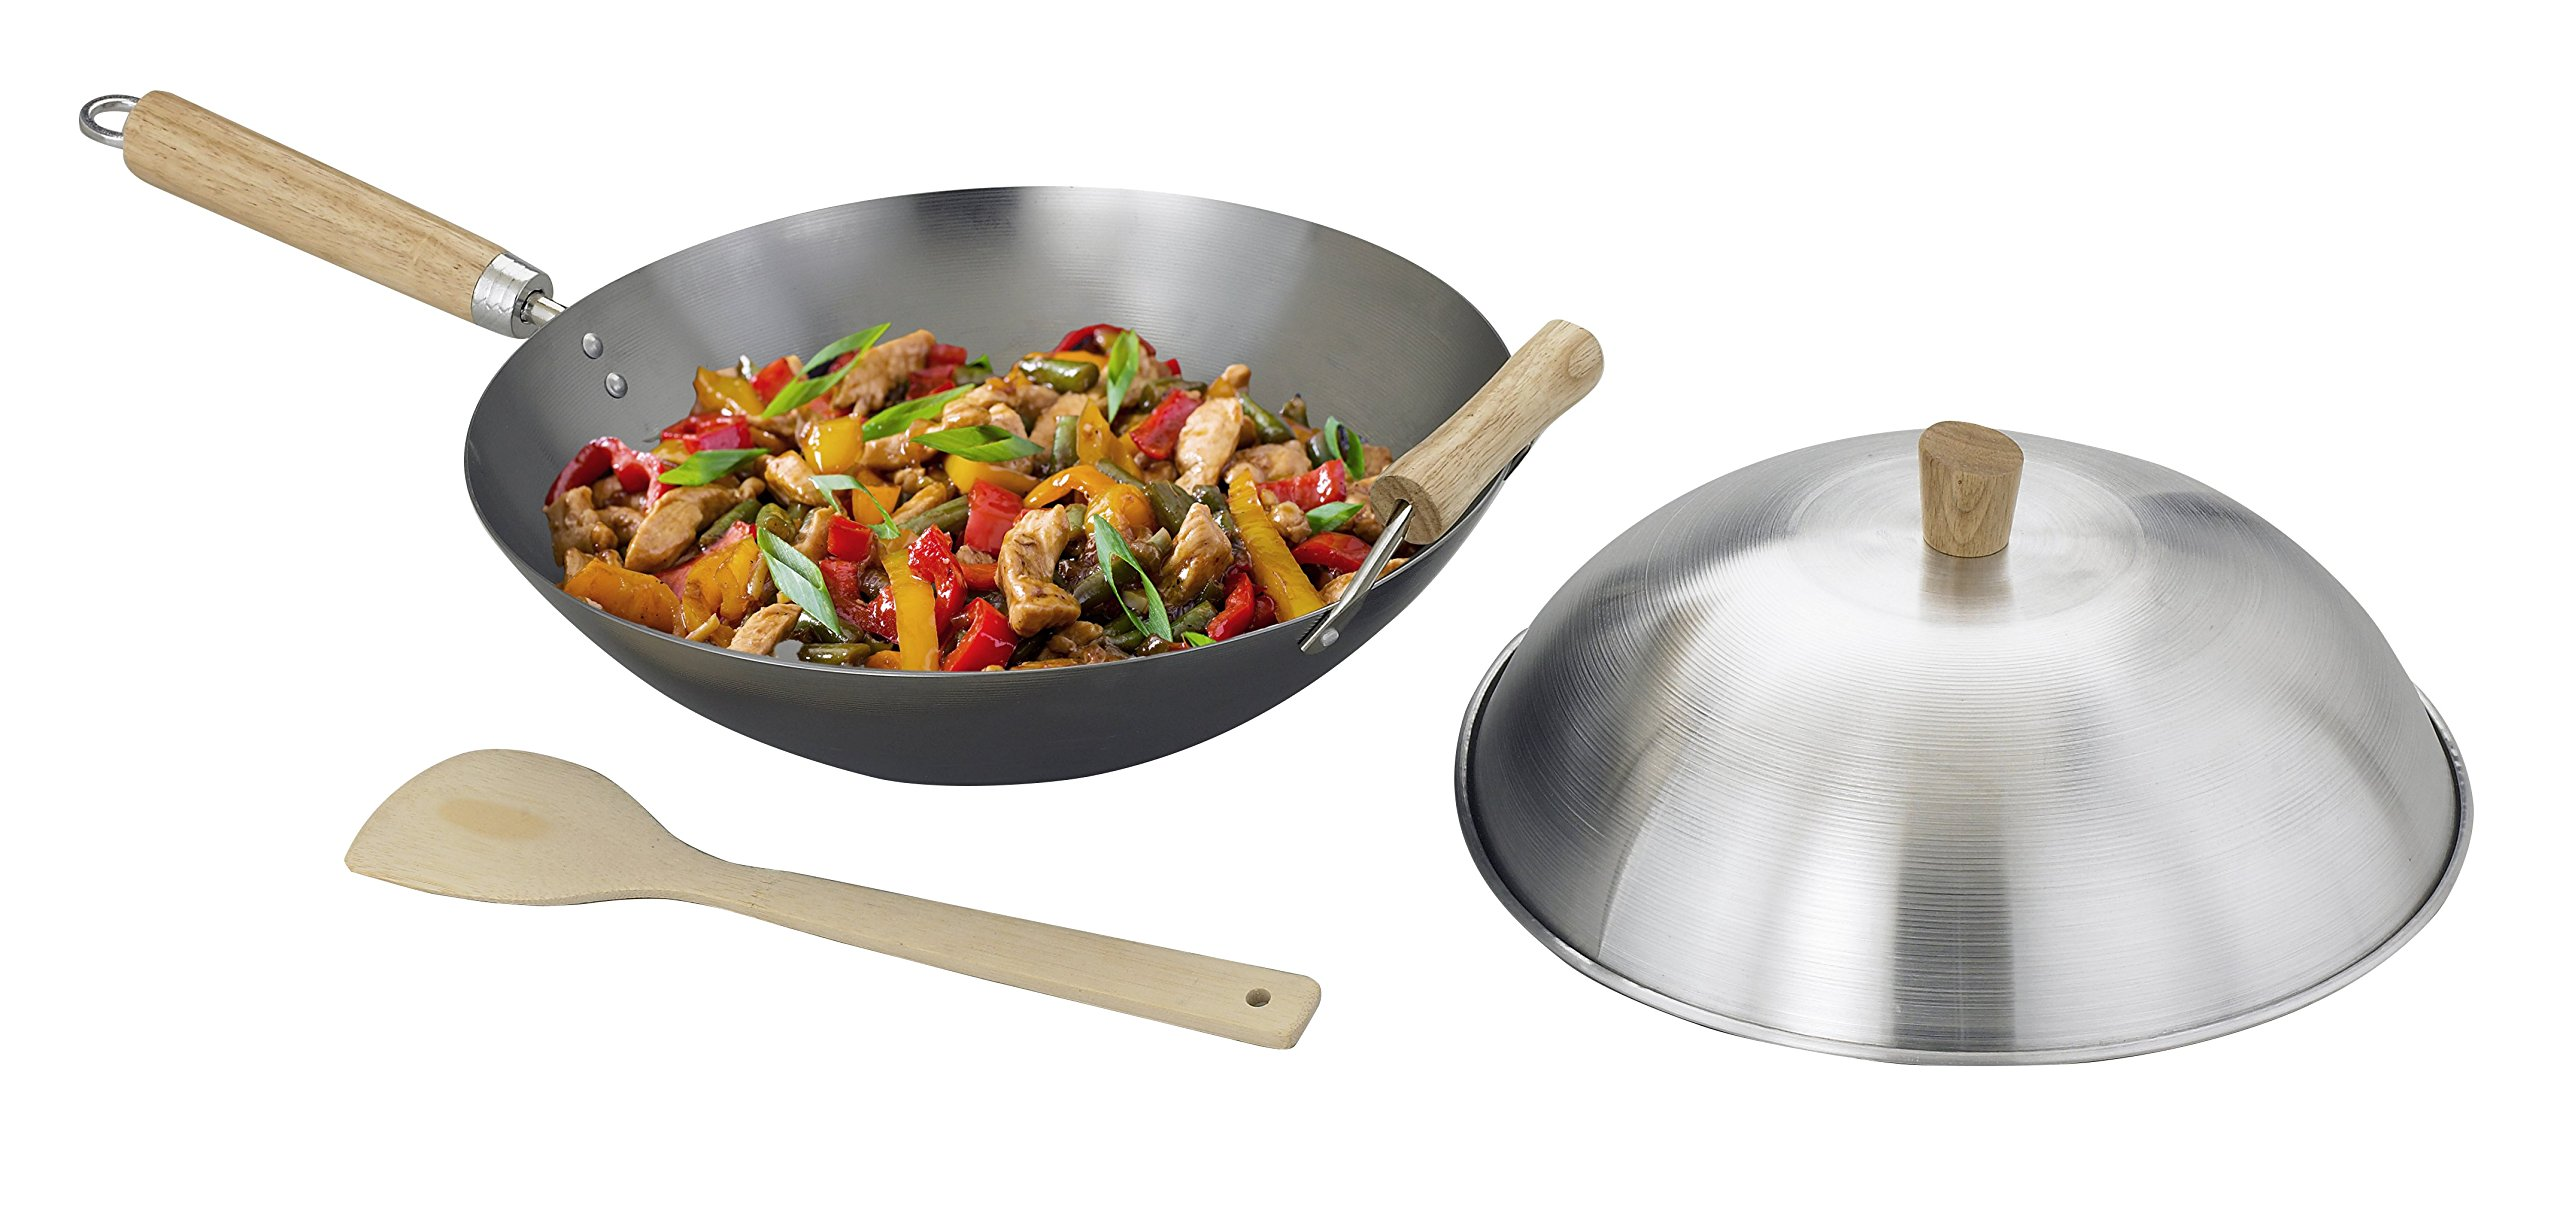 Helen Chen's Asian Kitchen Flat Bottom Wok, Carbon Steel with Lid and Stir Fry Spatula, Recipes Included, 14-inch, 3 Piece Set by Helen's Asian Kitchen (Image #2)